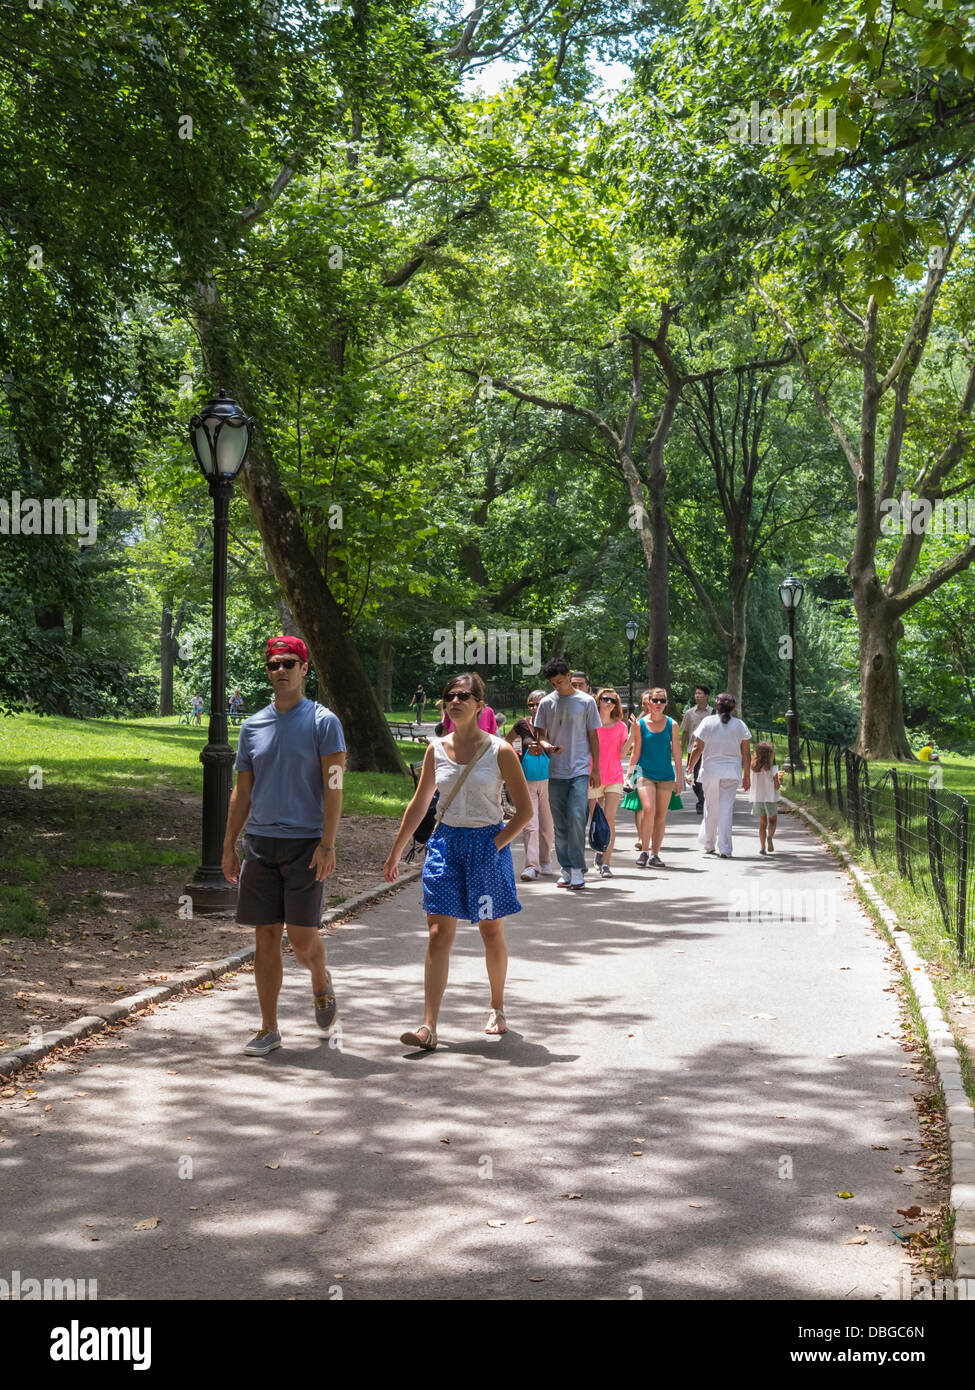 People walking in Central Park, New York City, Manhattan, and enjoying a hot summer day - Stock Image